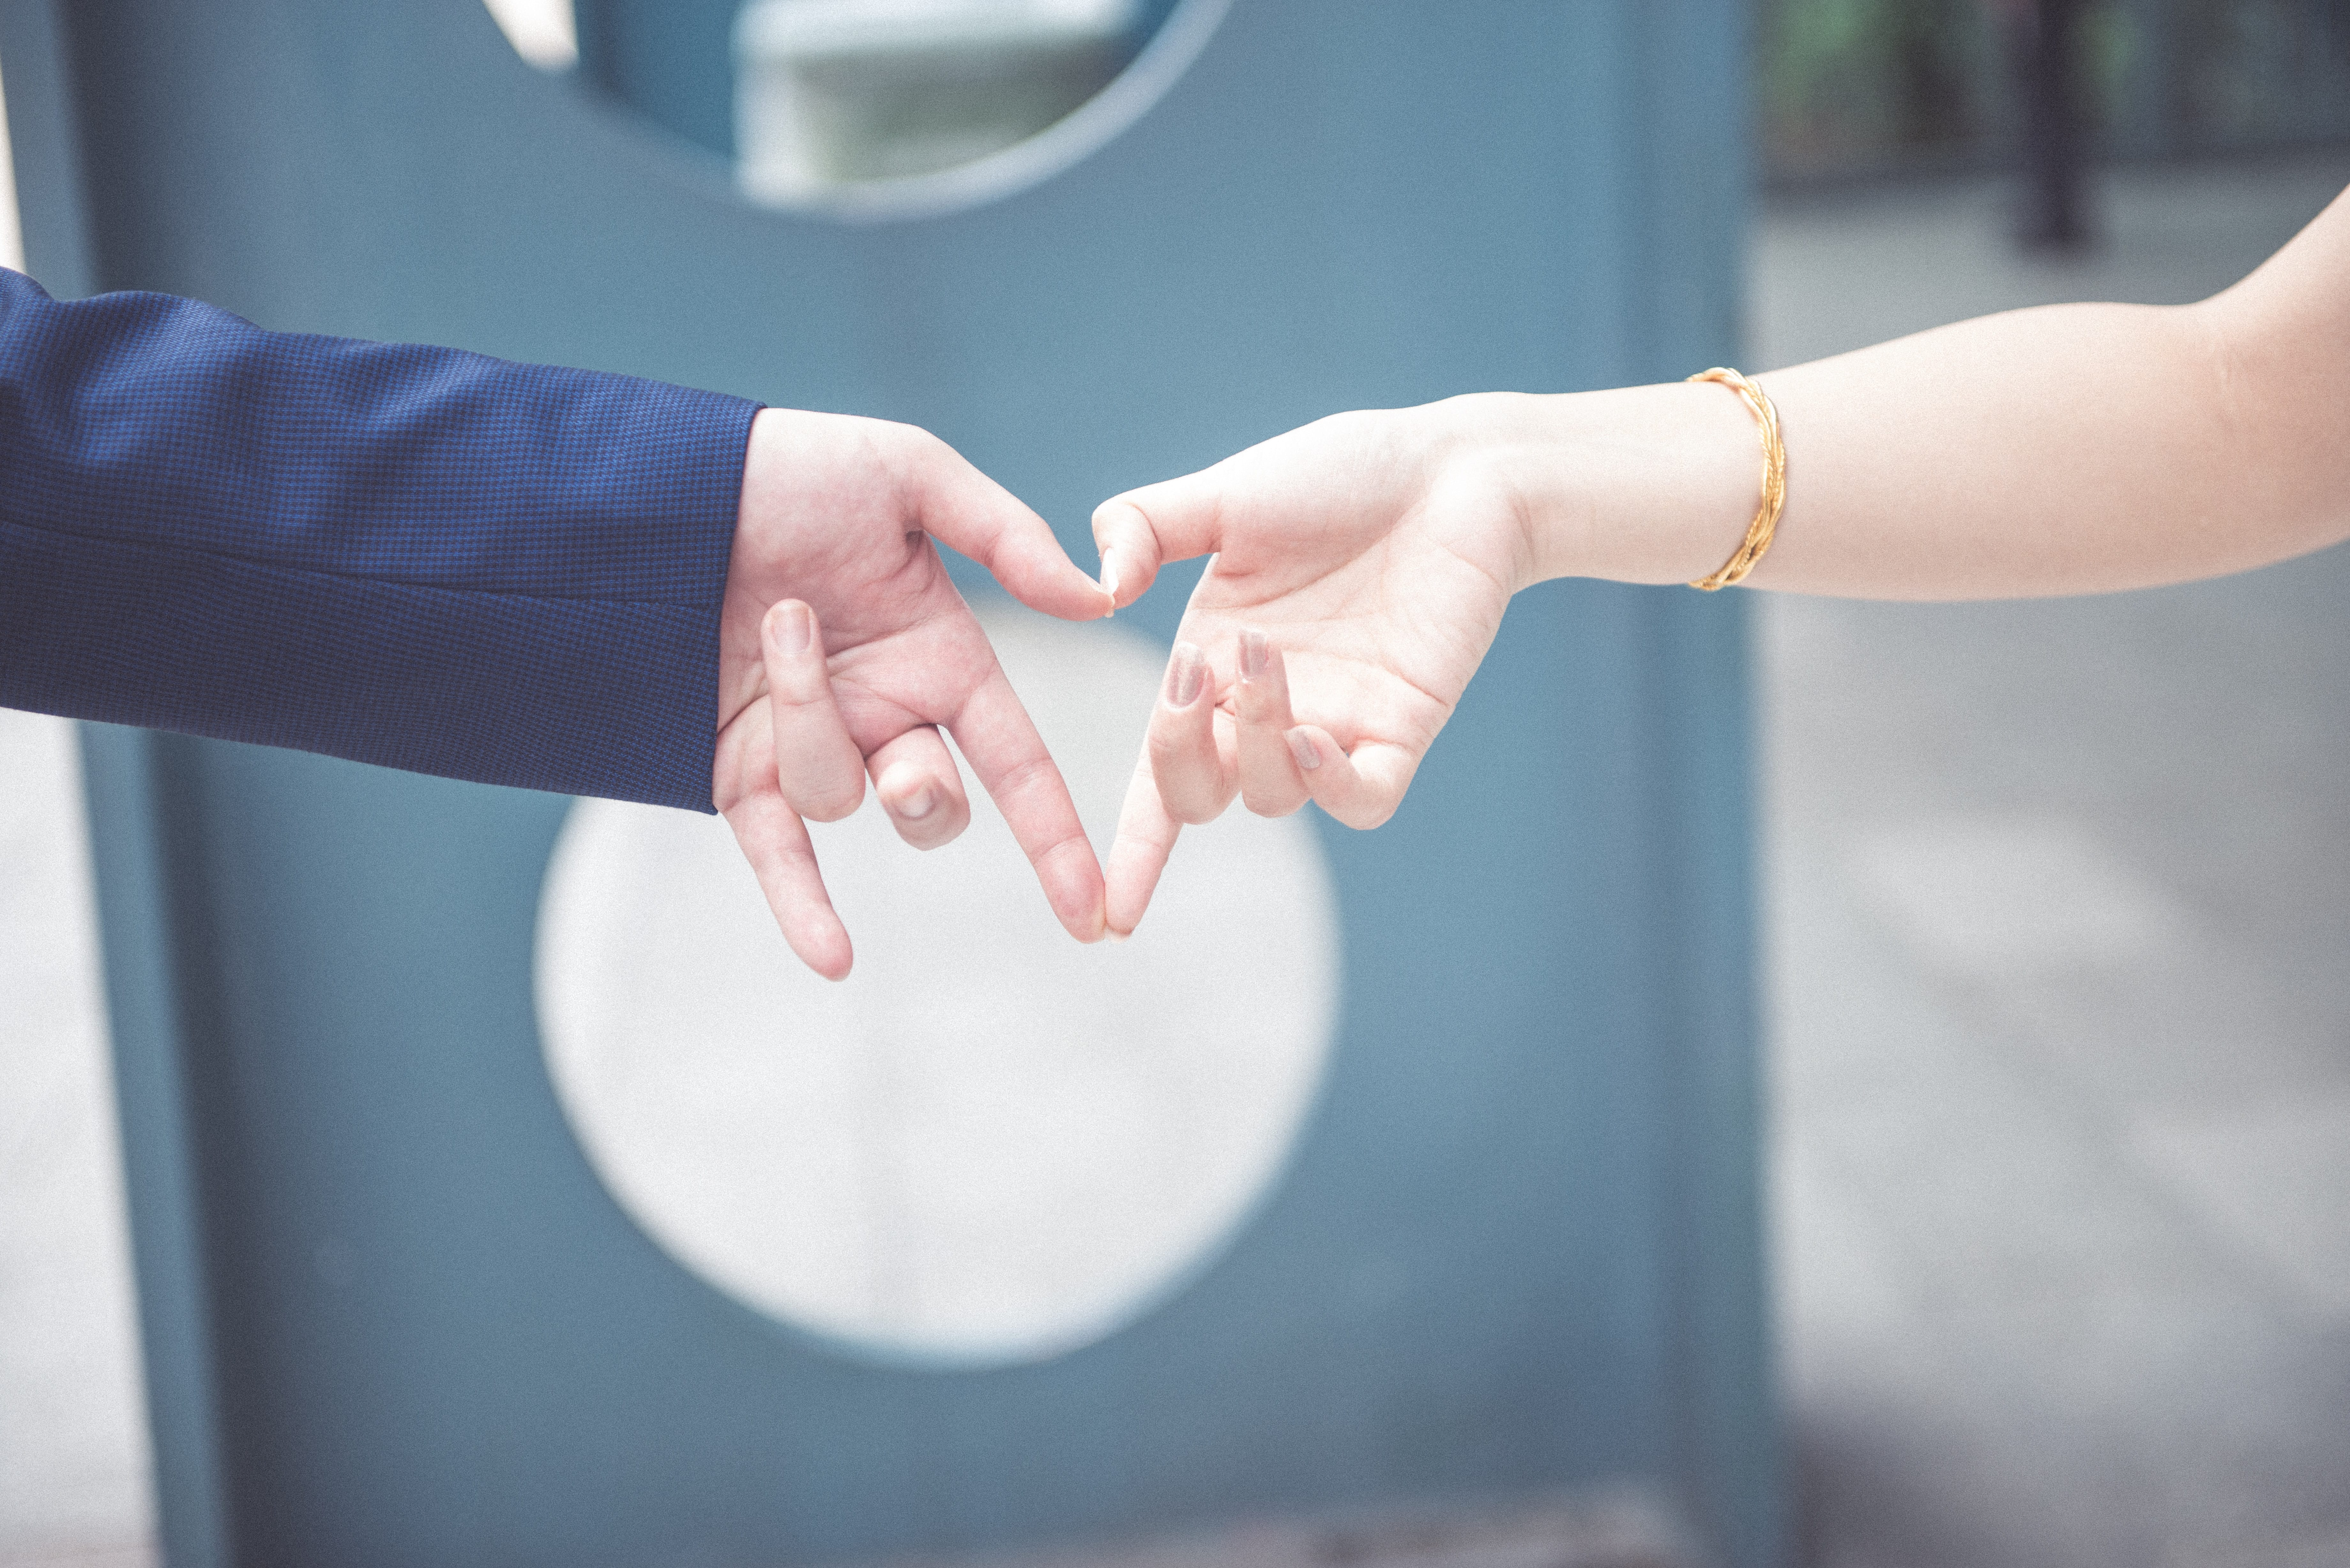 Man and woman making heart symbol with hands; image by Han Hsing Tu, via Unsplash.com.